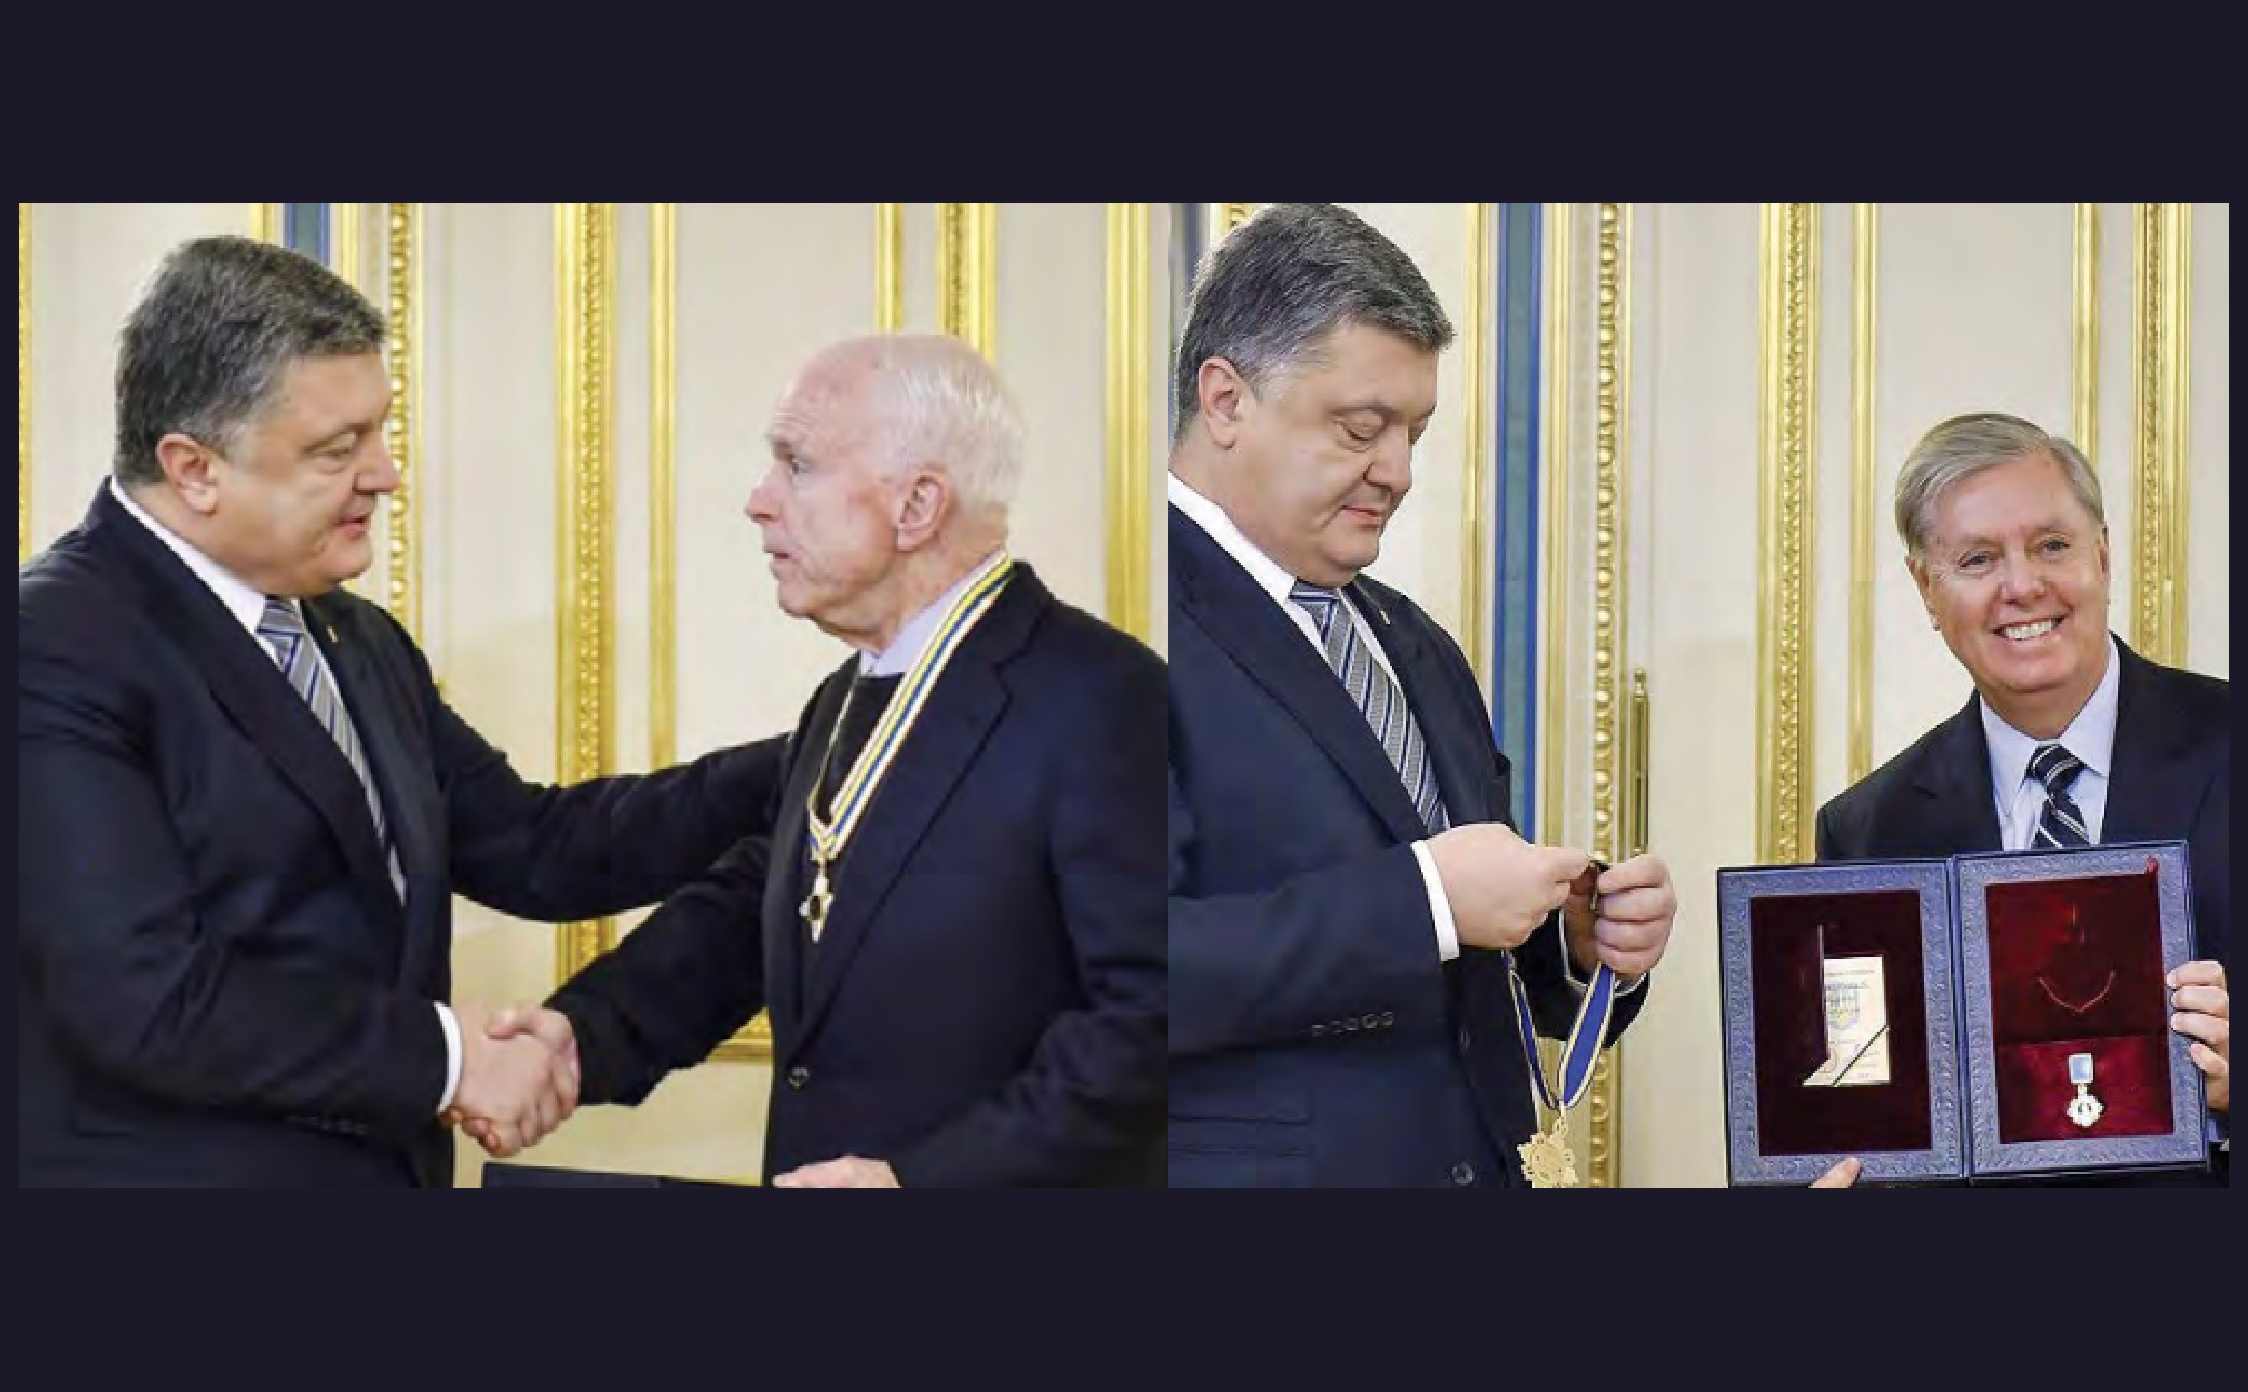 VIDEO] 2017: Lindsey Graham and John McCain Awarded 'State Honors' By  Corrupt Ukrainian Govt. Who Meddled In Our 2016 Election - WayneDupree.com